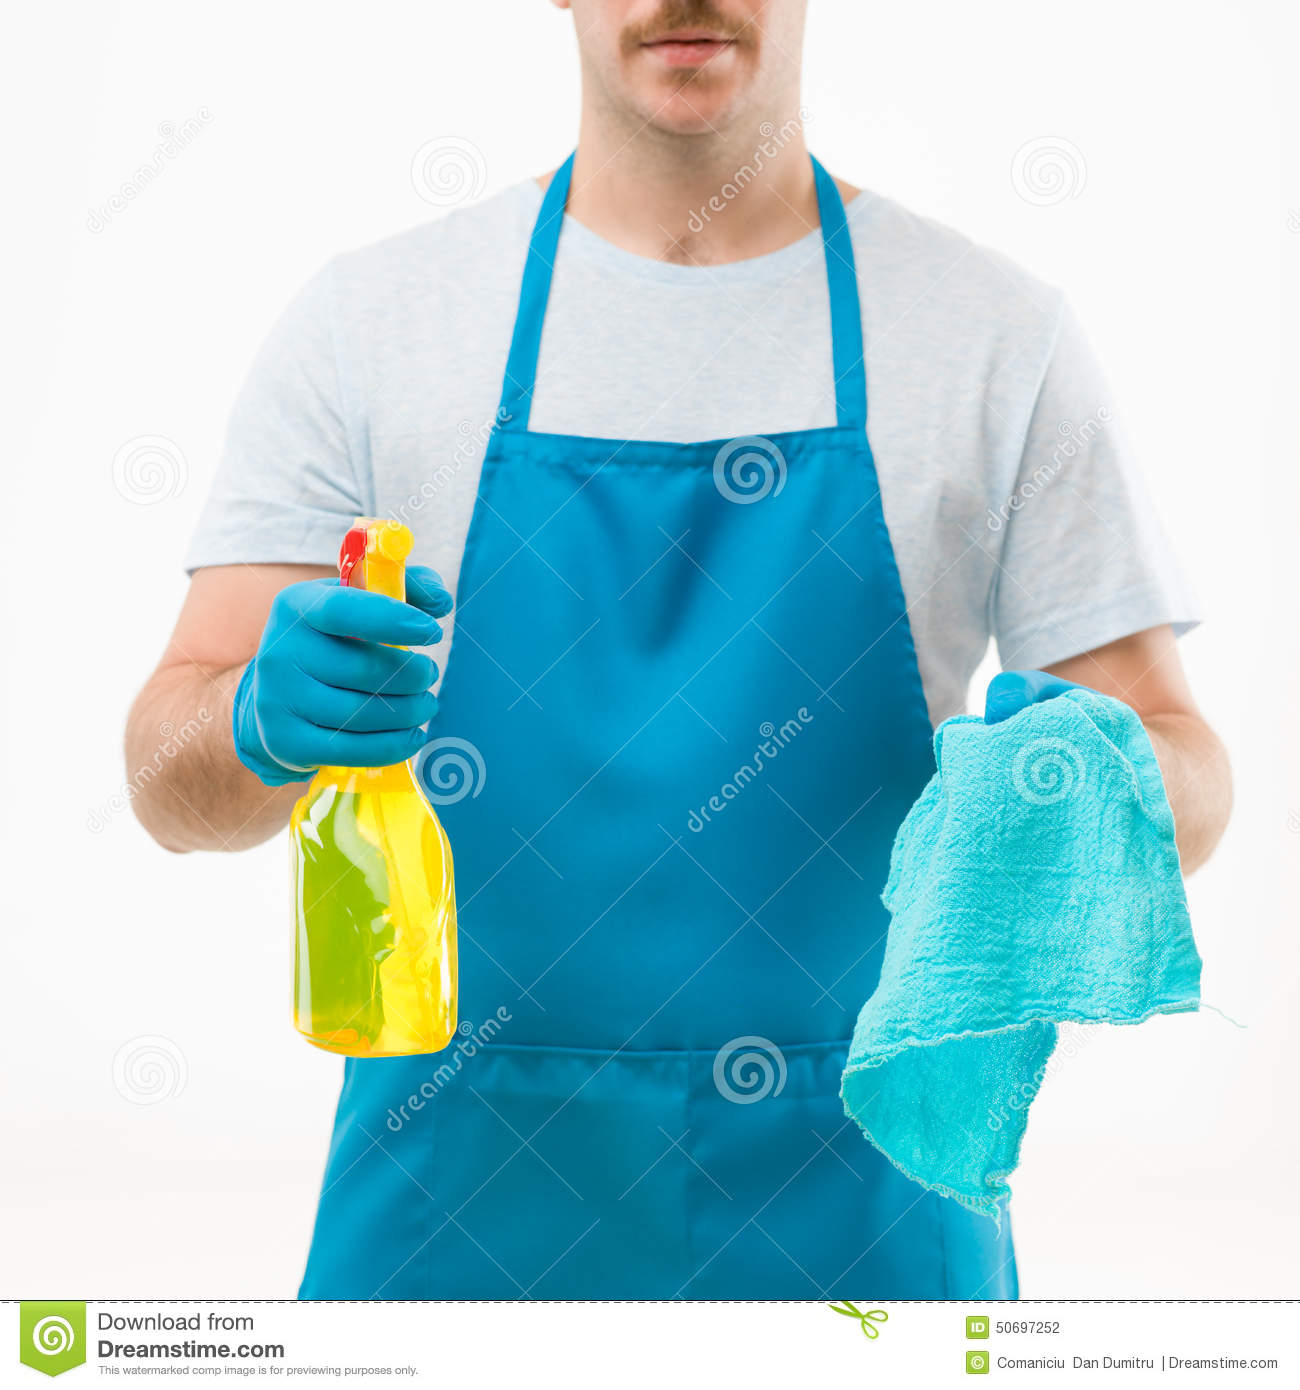 White gloves apron cleaning services - Cleaning Service